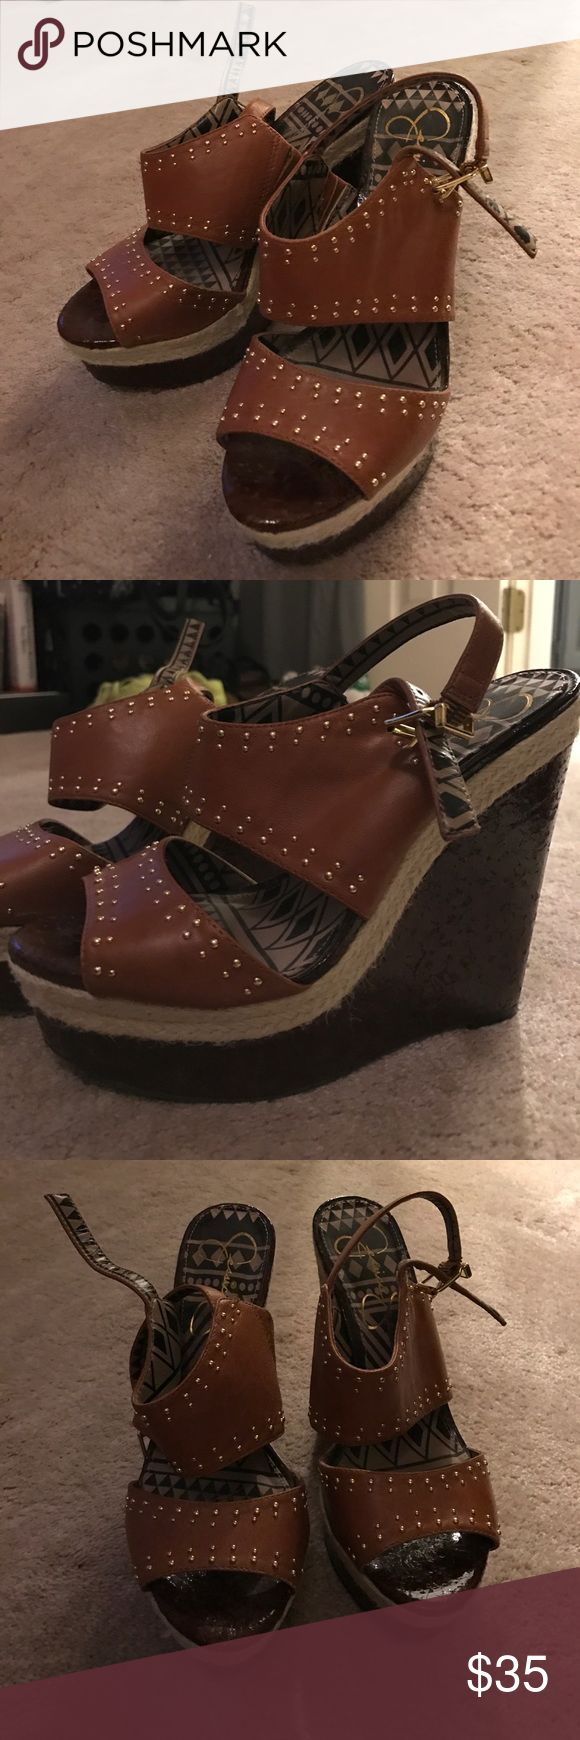 Jessica Simpson Wedges 7 1/2 Jessica Simpson Wedges in perfect condition! Jessica Simpson Shoes Wedges